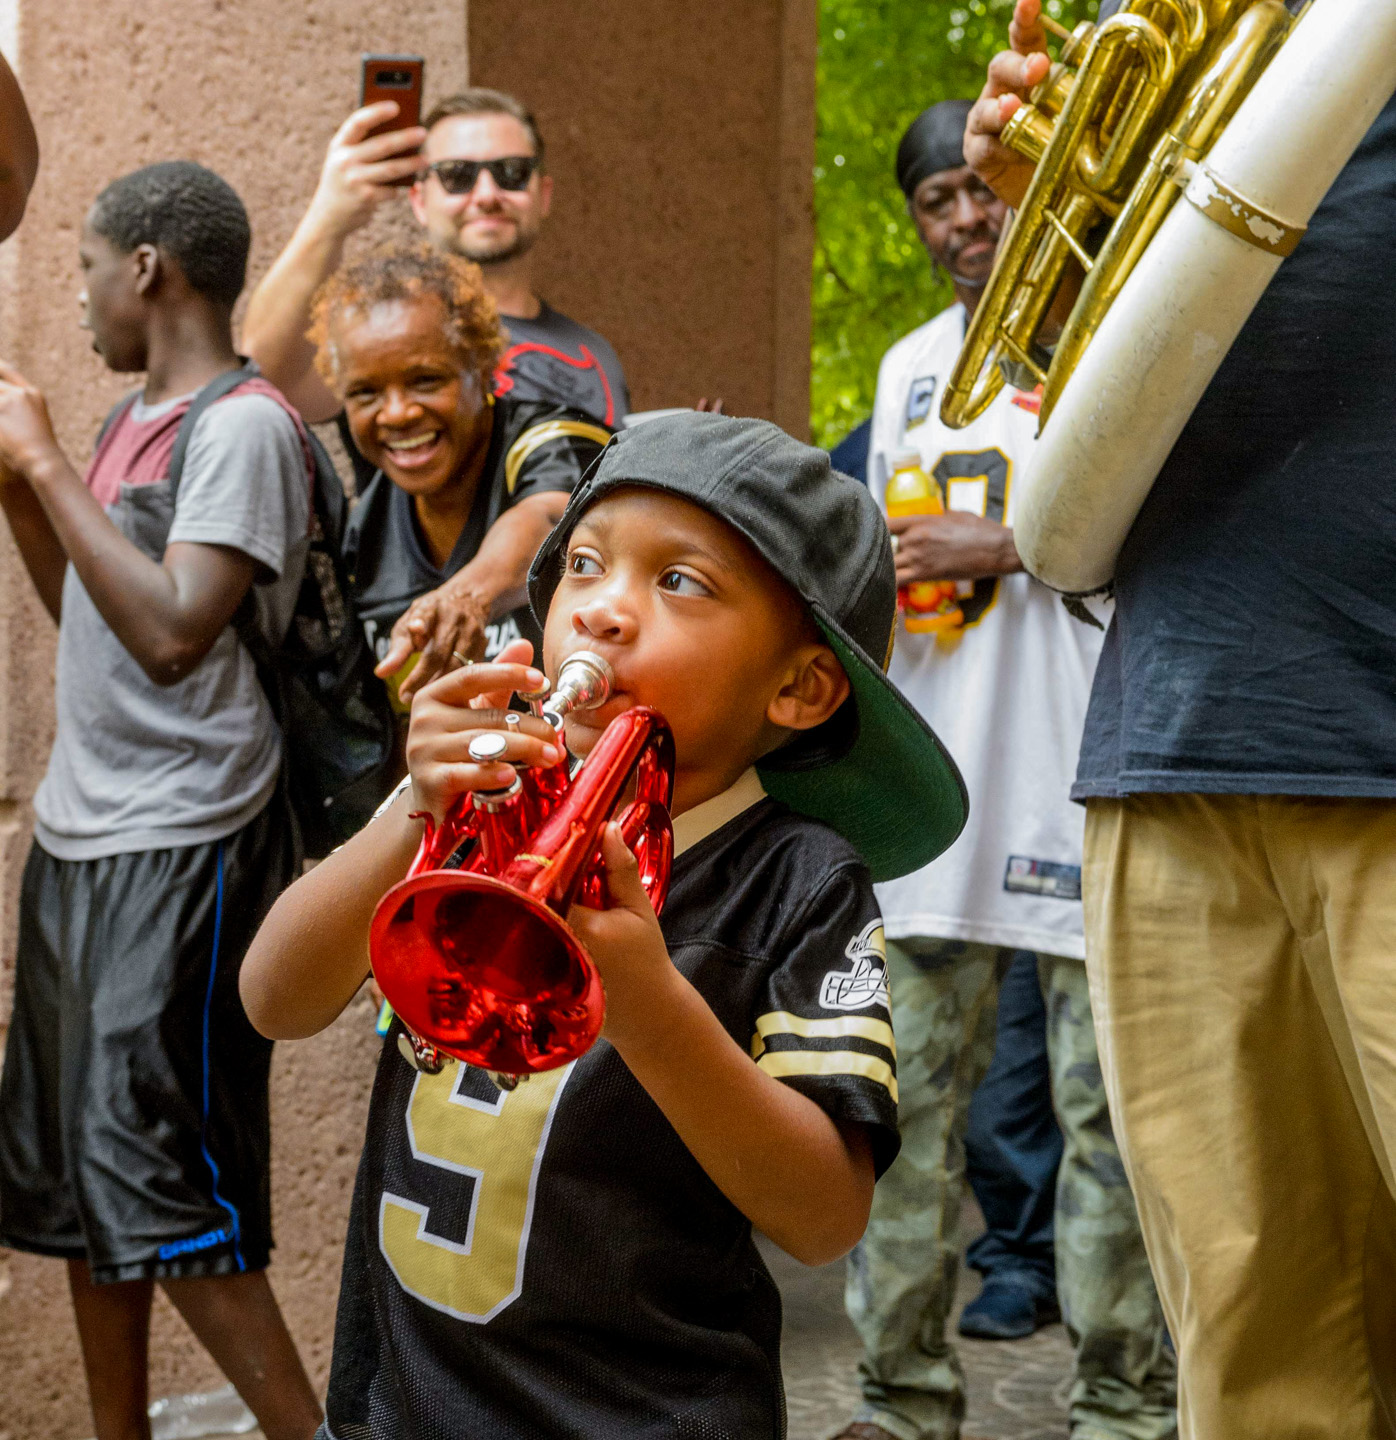 Saints Game Day Second Line